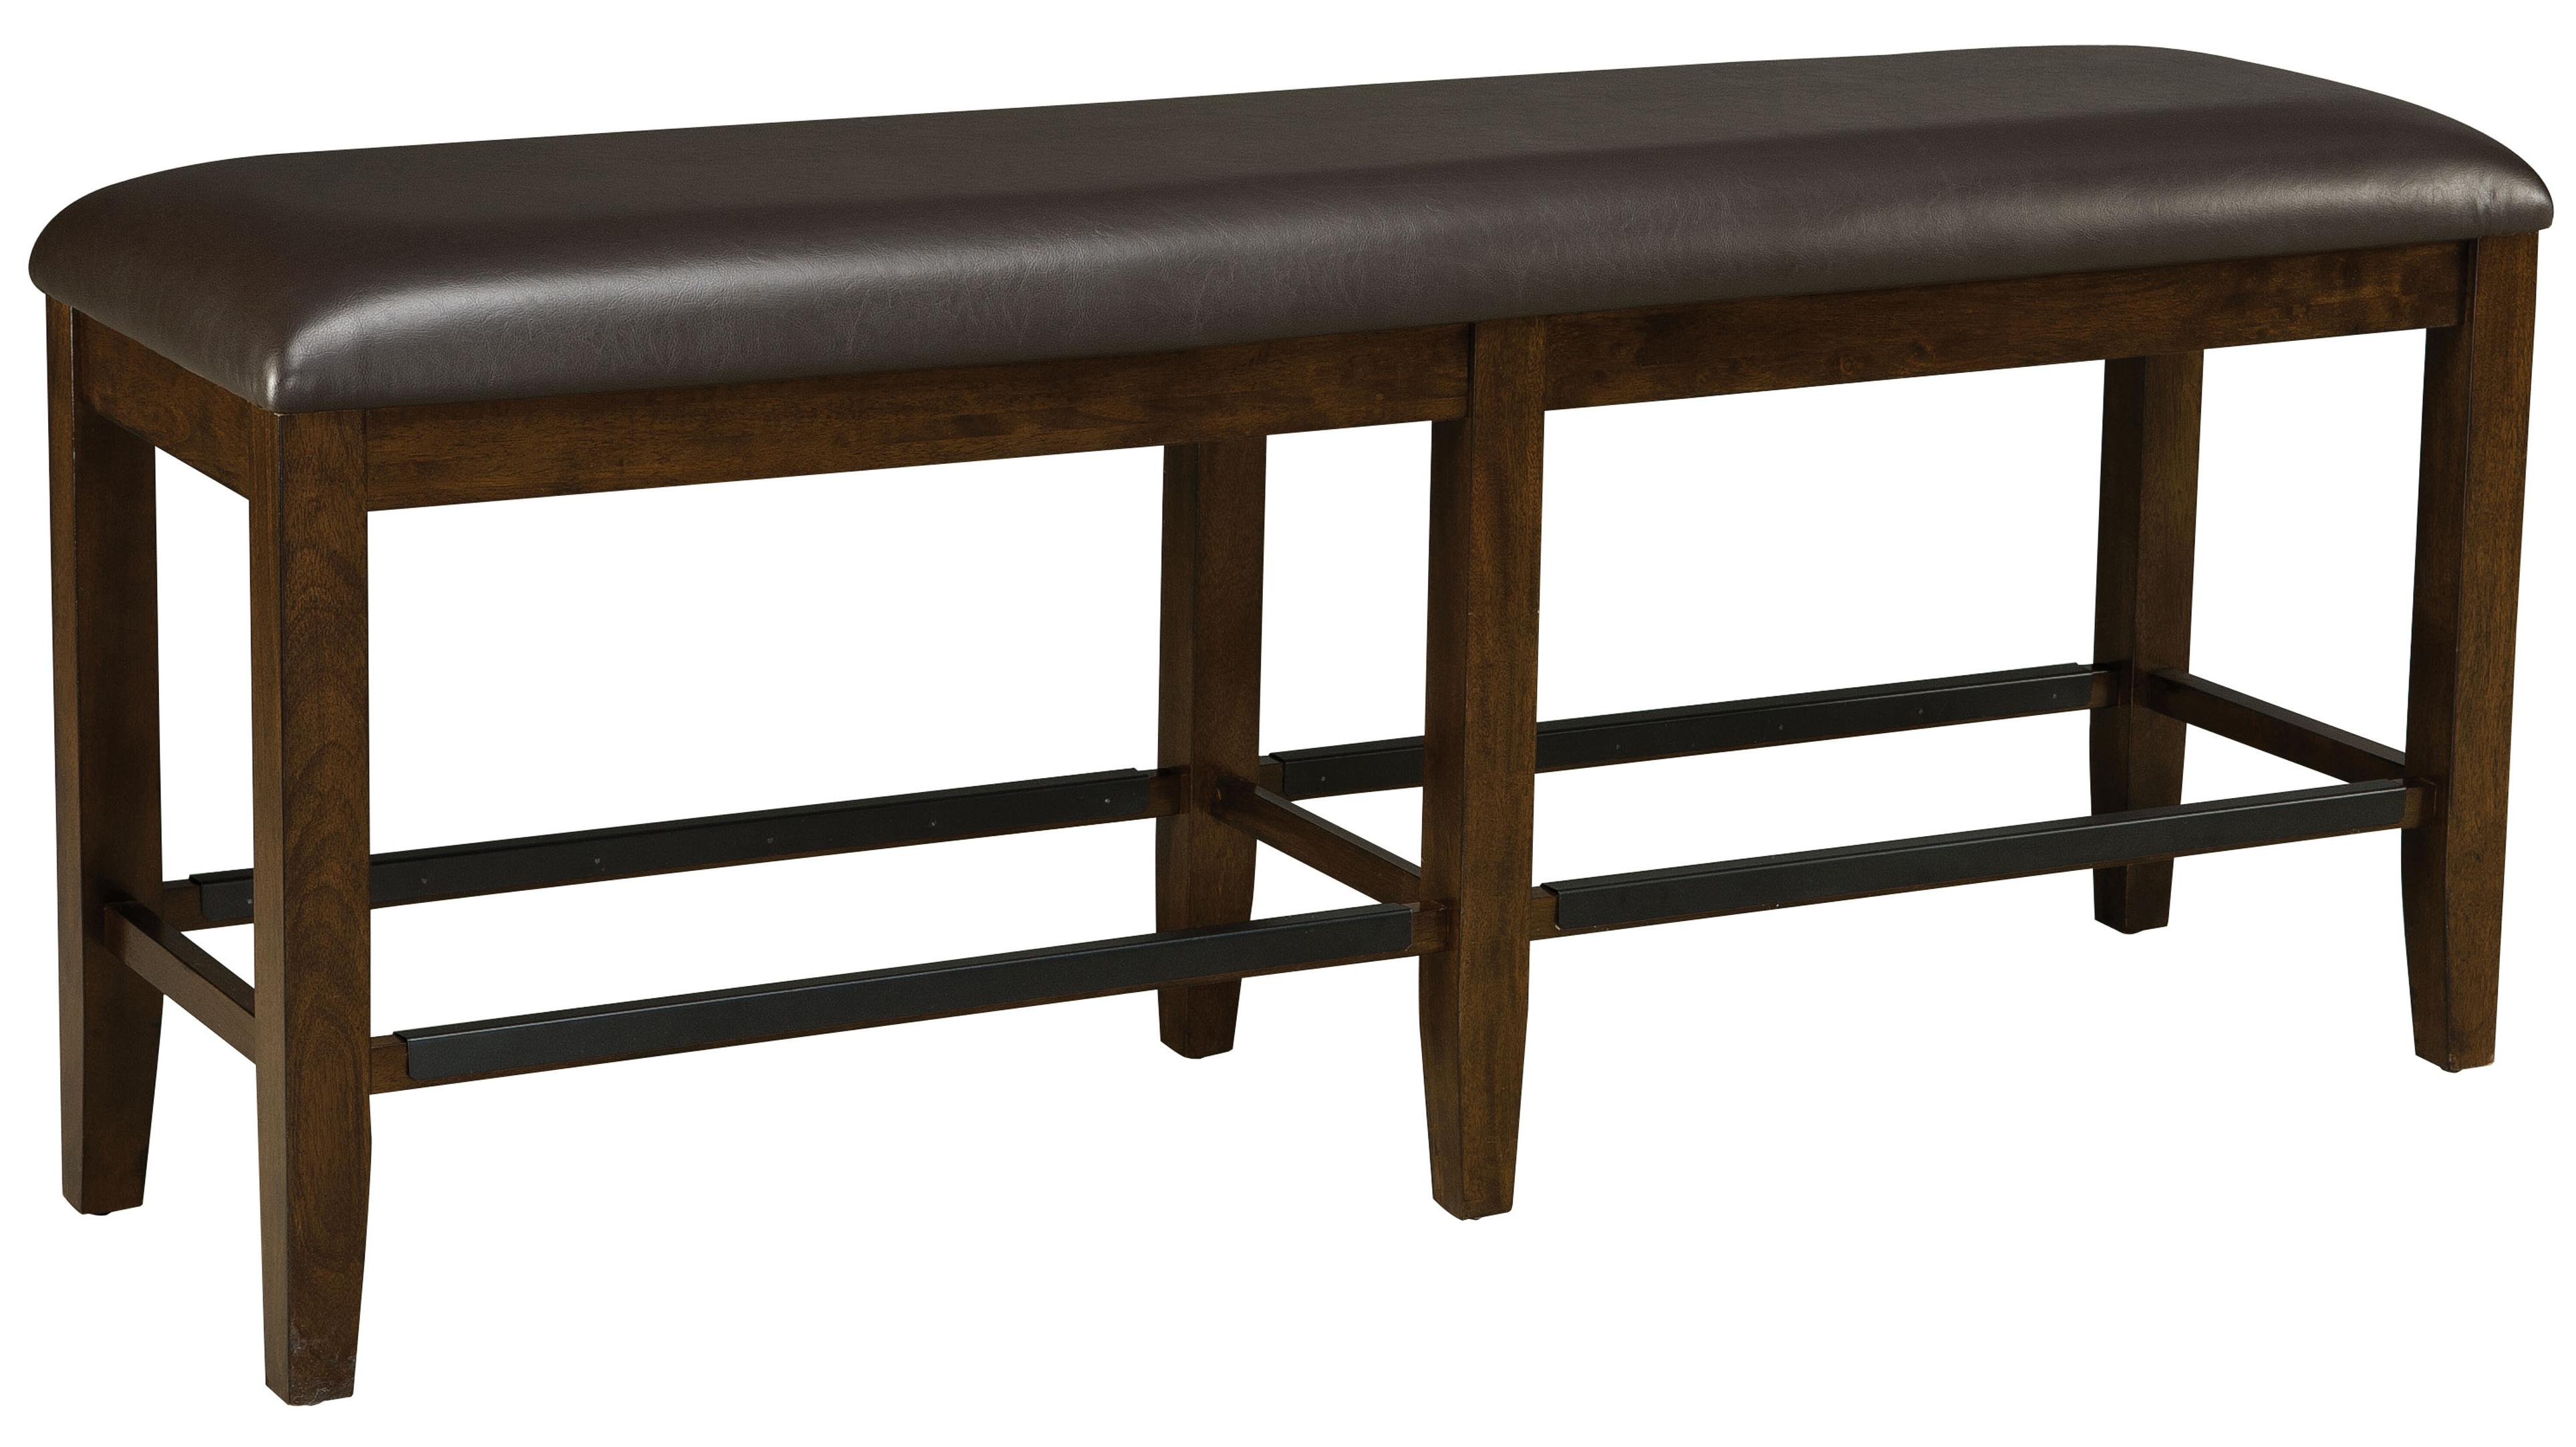 Standard Furniture Abaco Counter Height Bench - Item Number: 18939